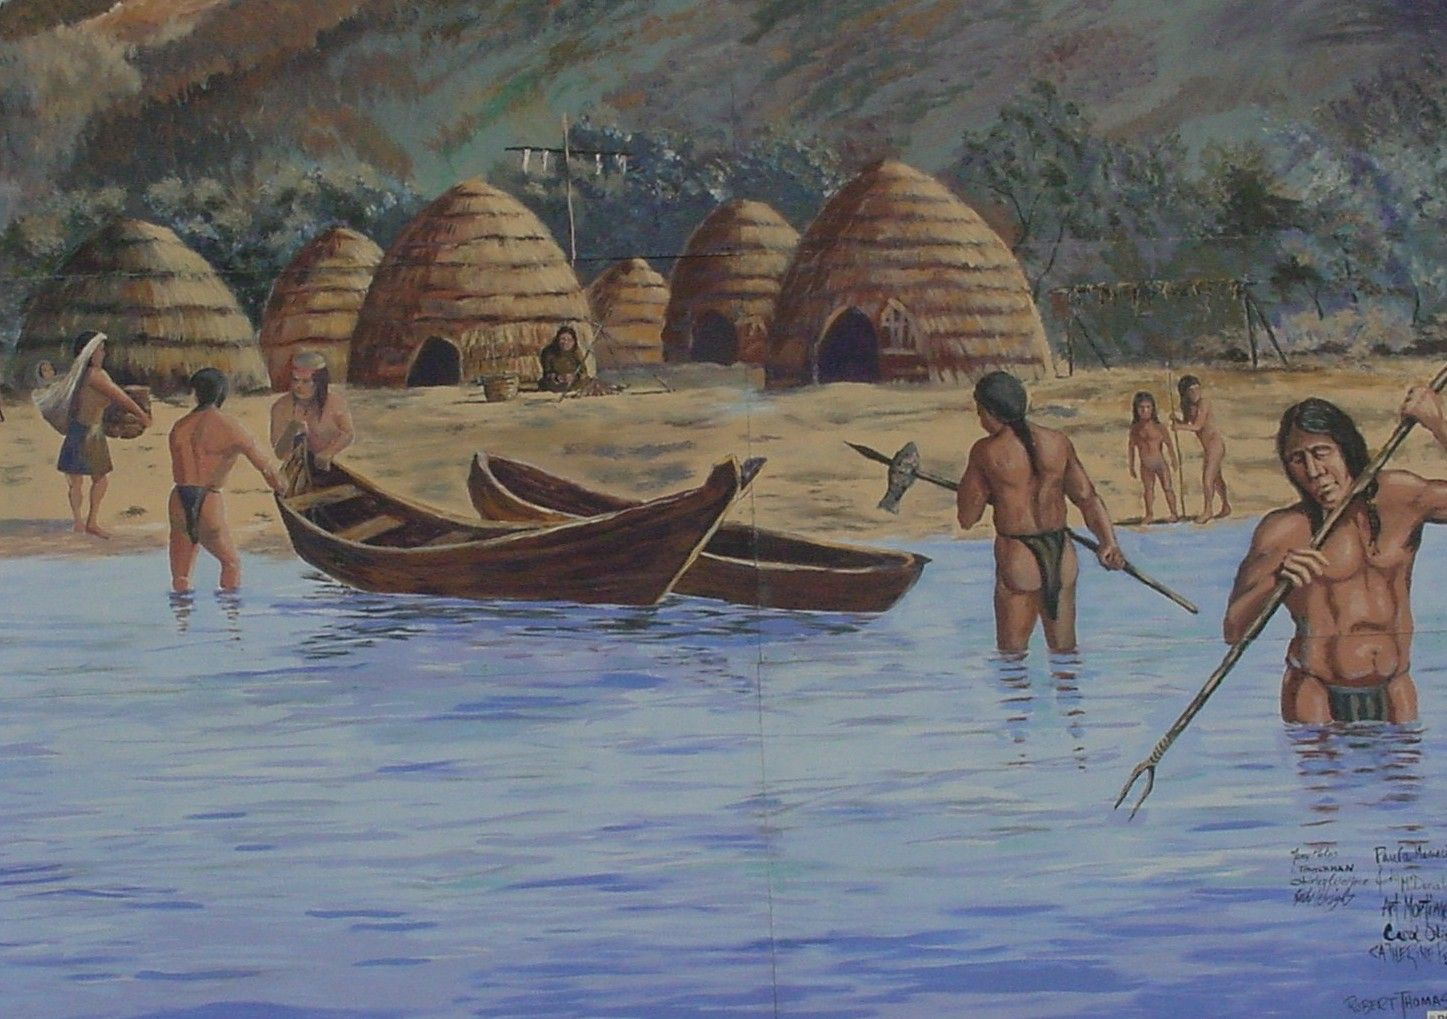 """an analysis of the chumash indians in the natives of california Solely to expedite your review, i am submitting the latest draft of the santa ynez band of chumash indians , """"point dume  southern california's."""